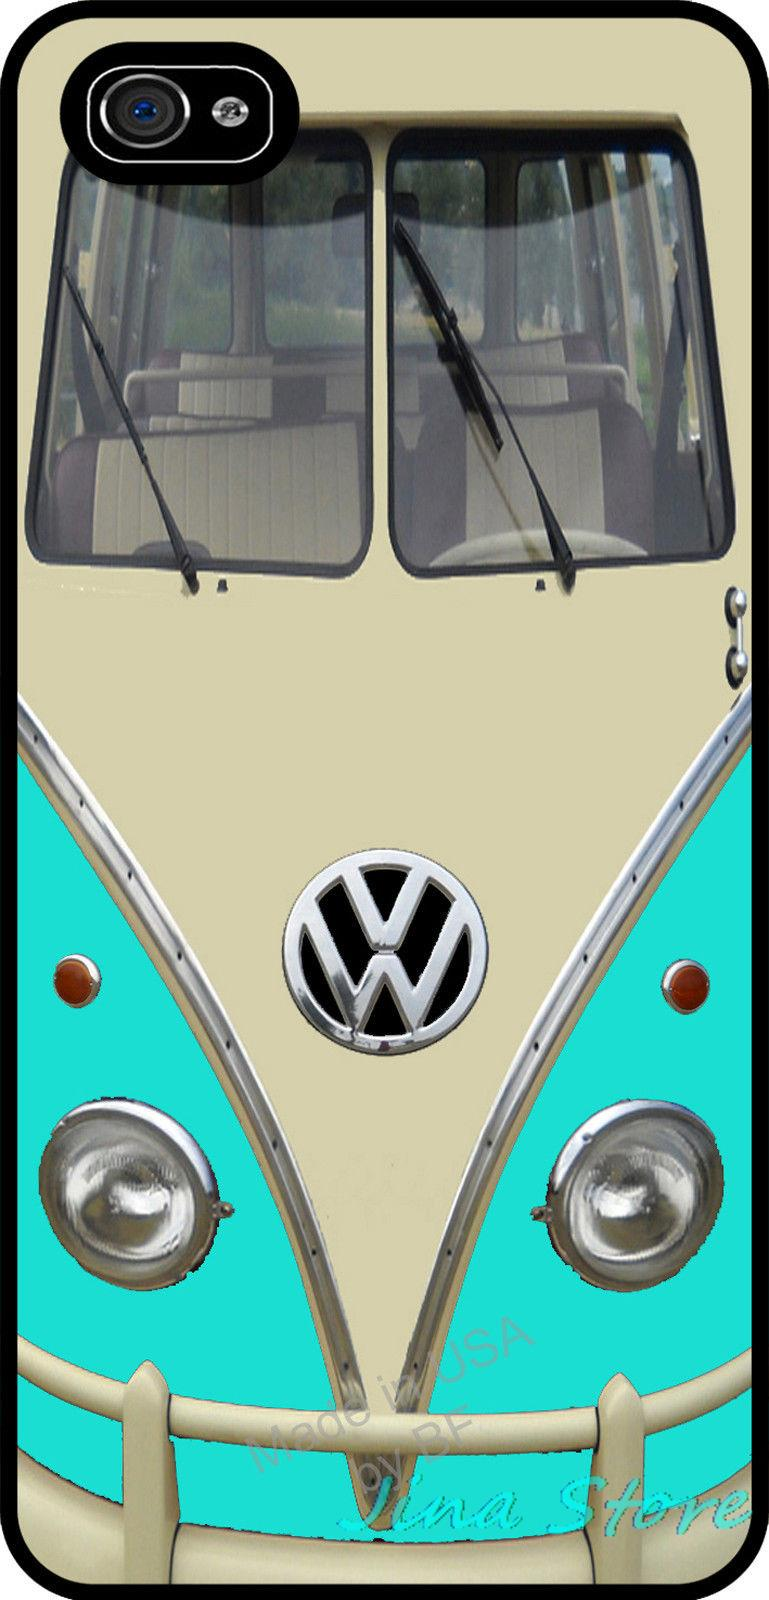 Bus logo cellphone case cover for iphone 4/4s/5/5s/6/6plus Samsung Galaxy S3/4/5/6/7/edge+ Note2/3/4/5(China (Mainland))